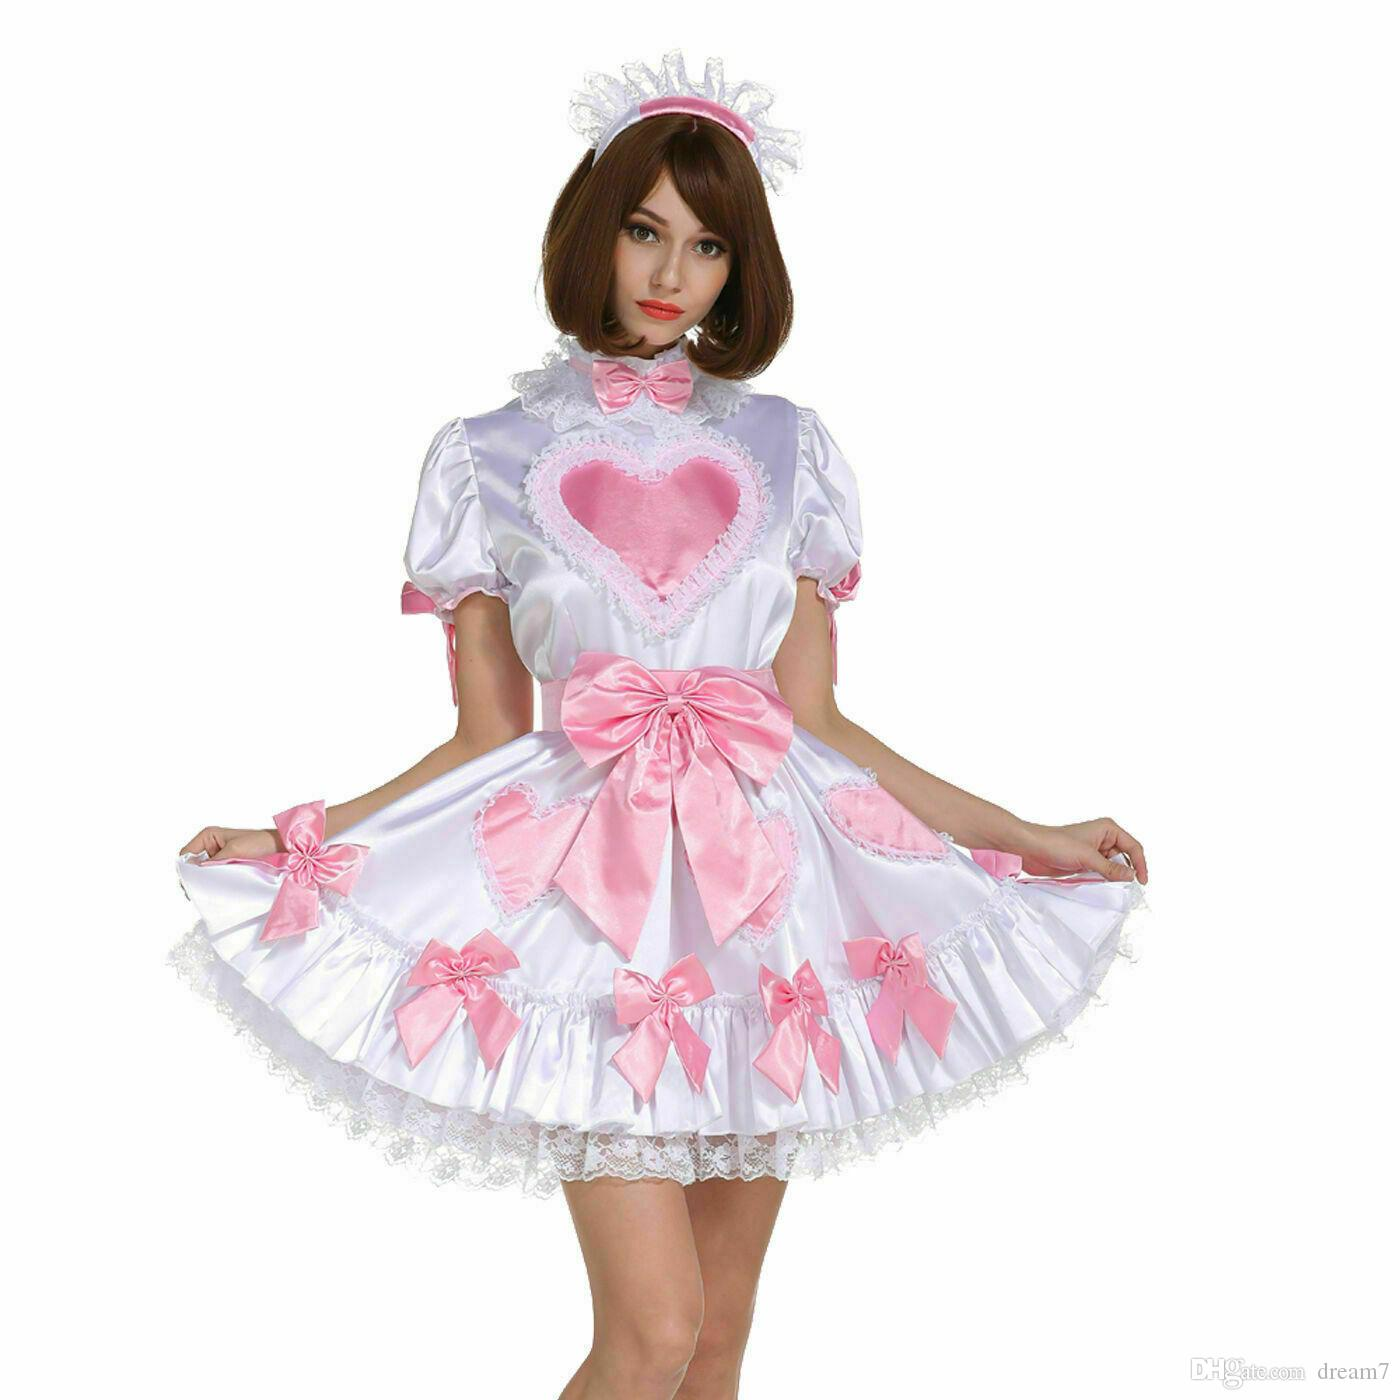 Sissy Girl Maid Lockable Amazing Heart Dream Dress Crossdressing Transgender